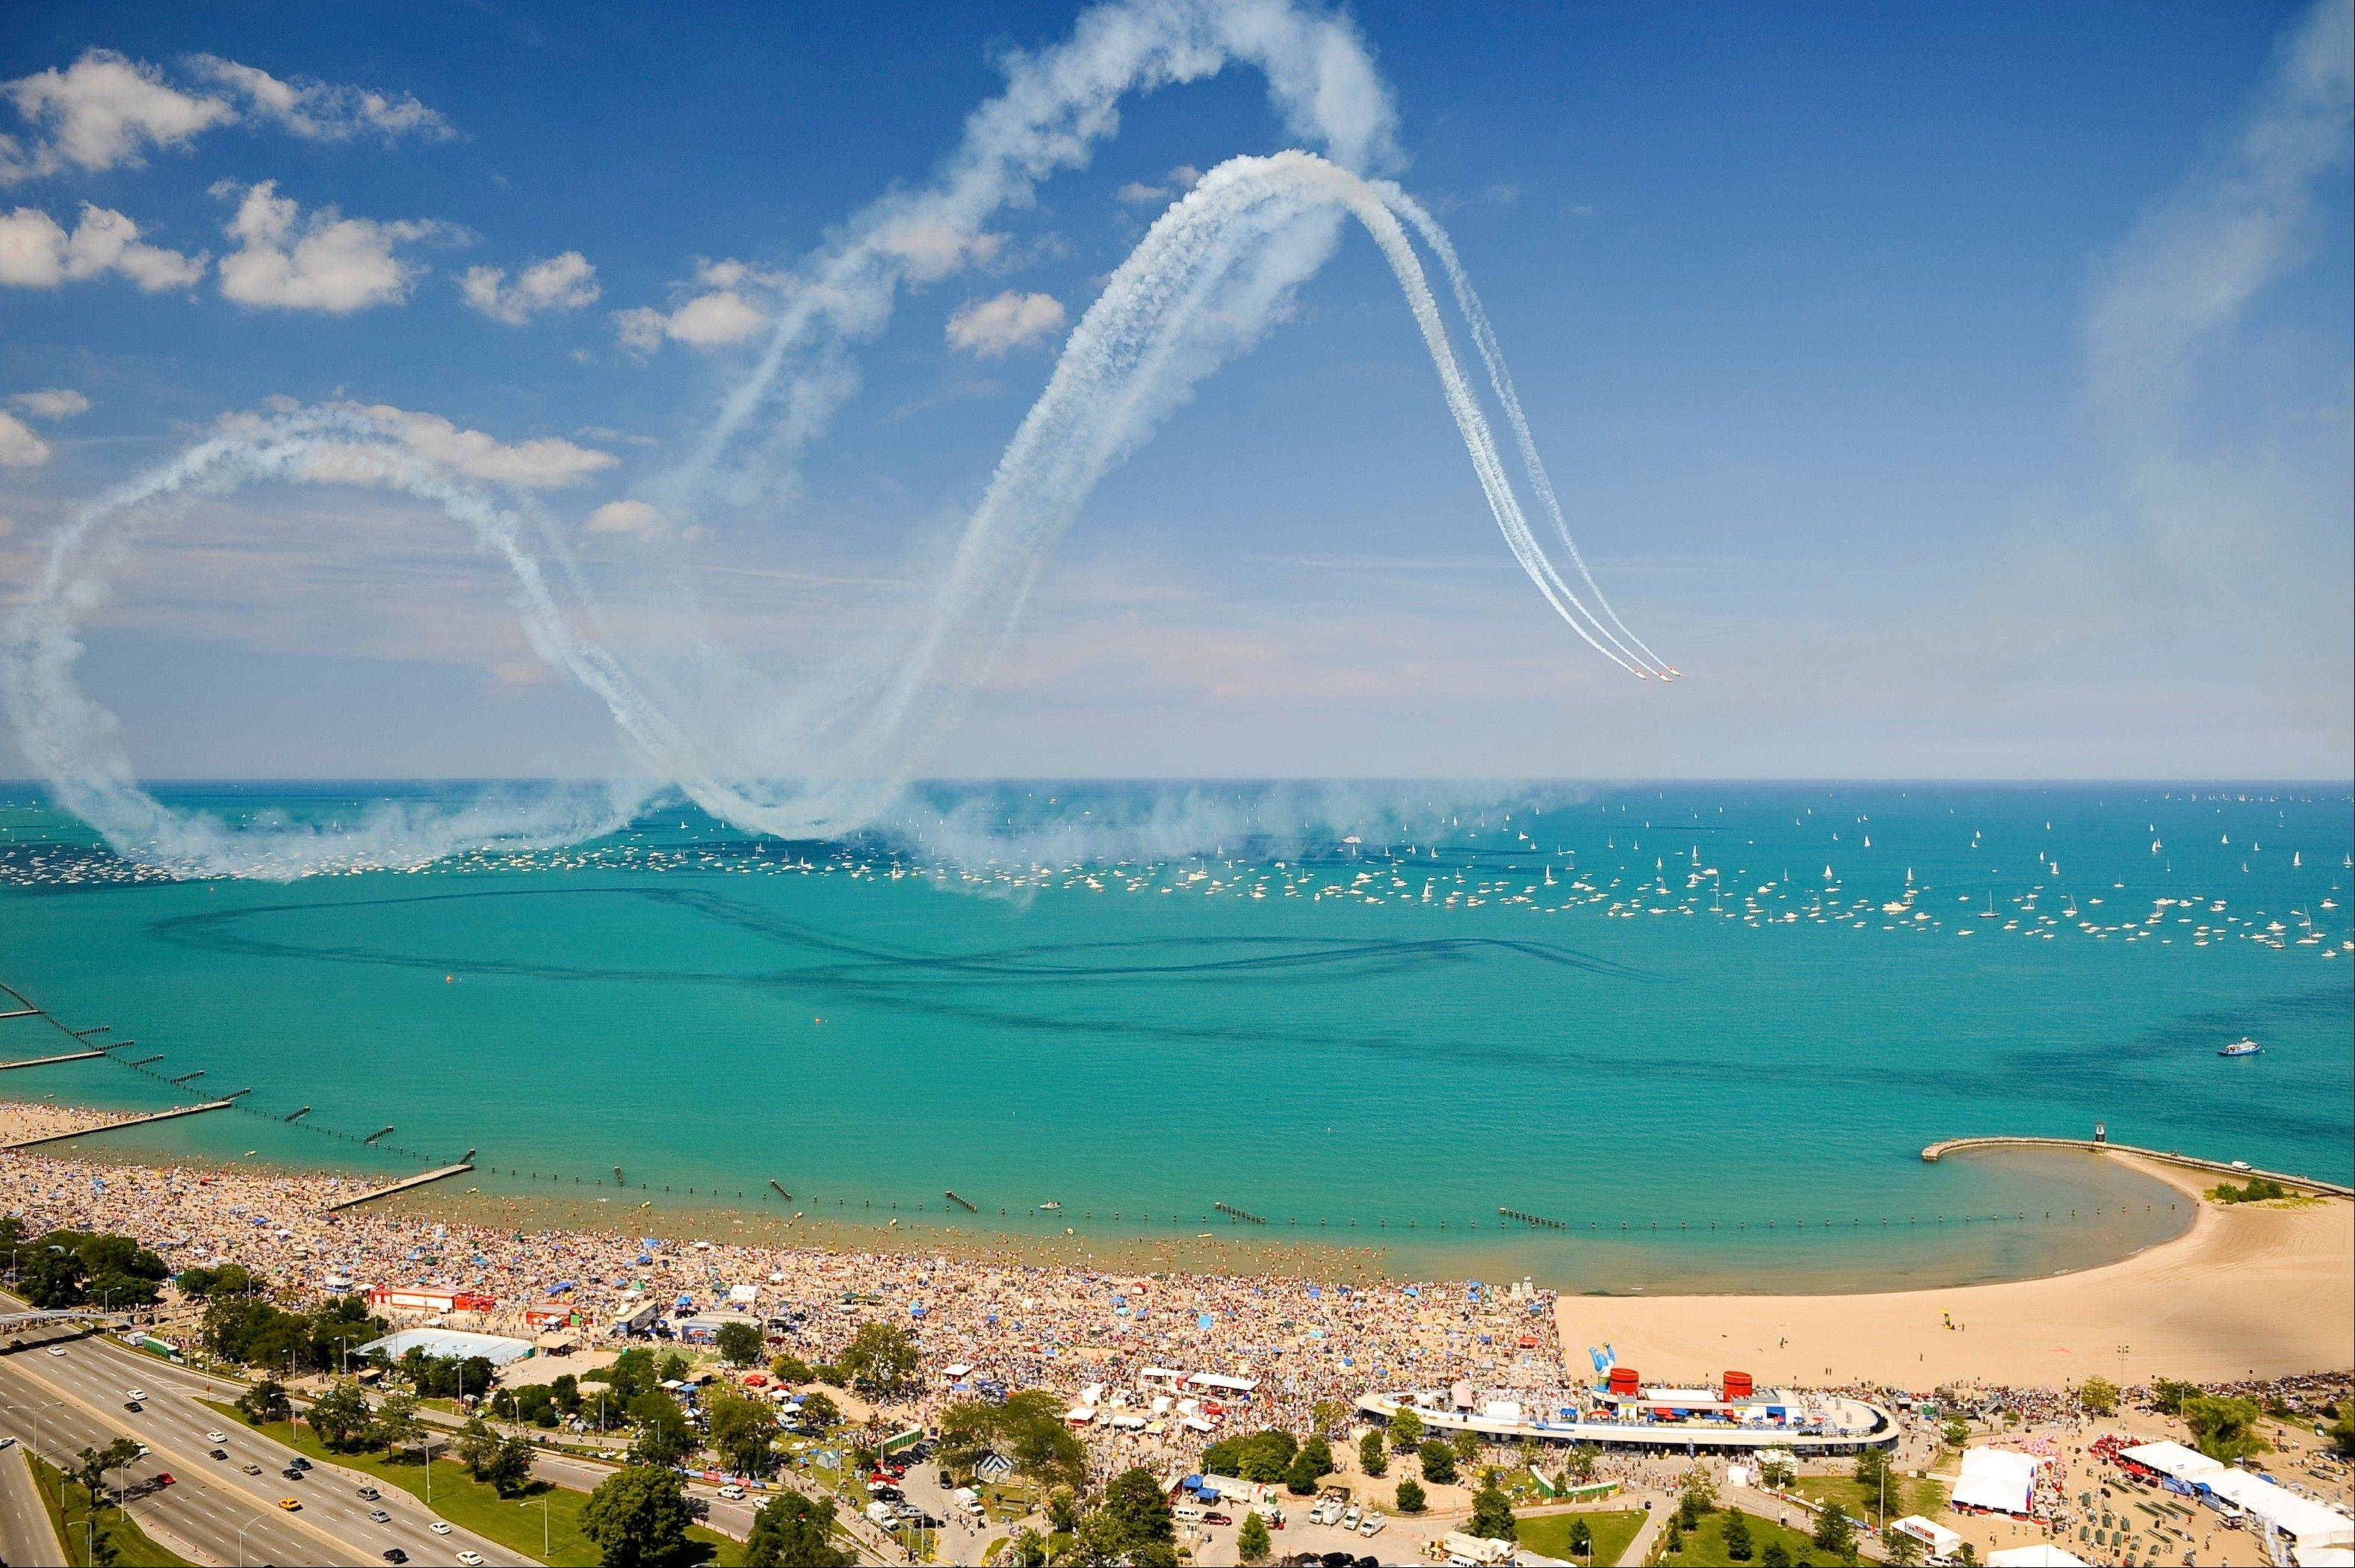 Best ways to watch the Air & Water Show